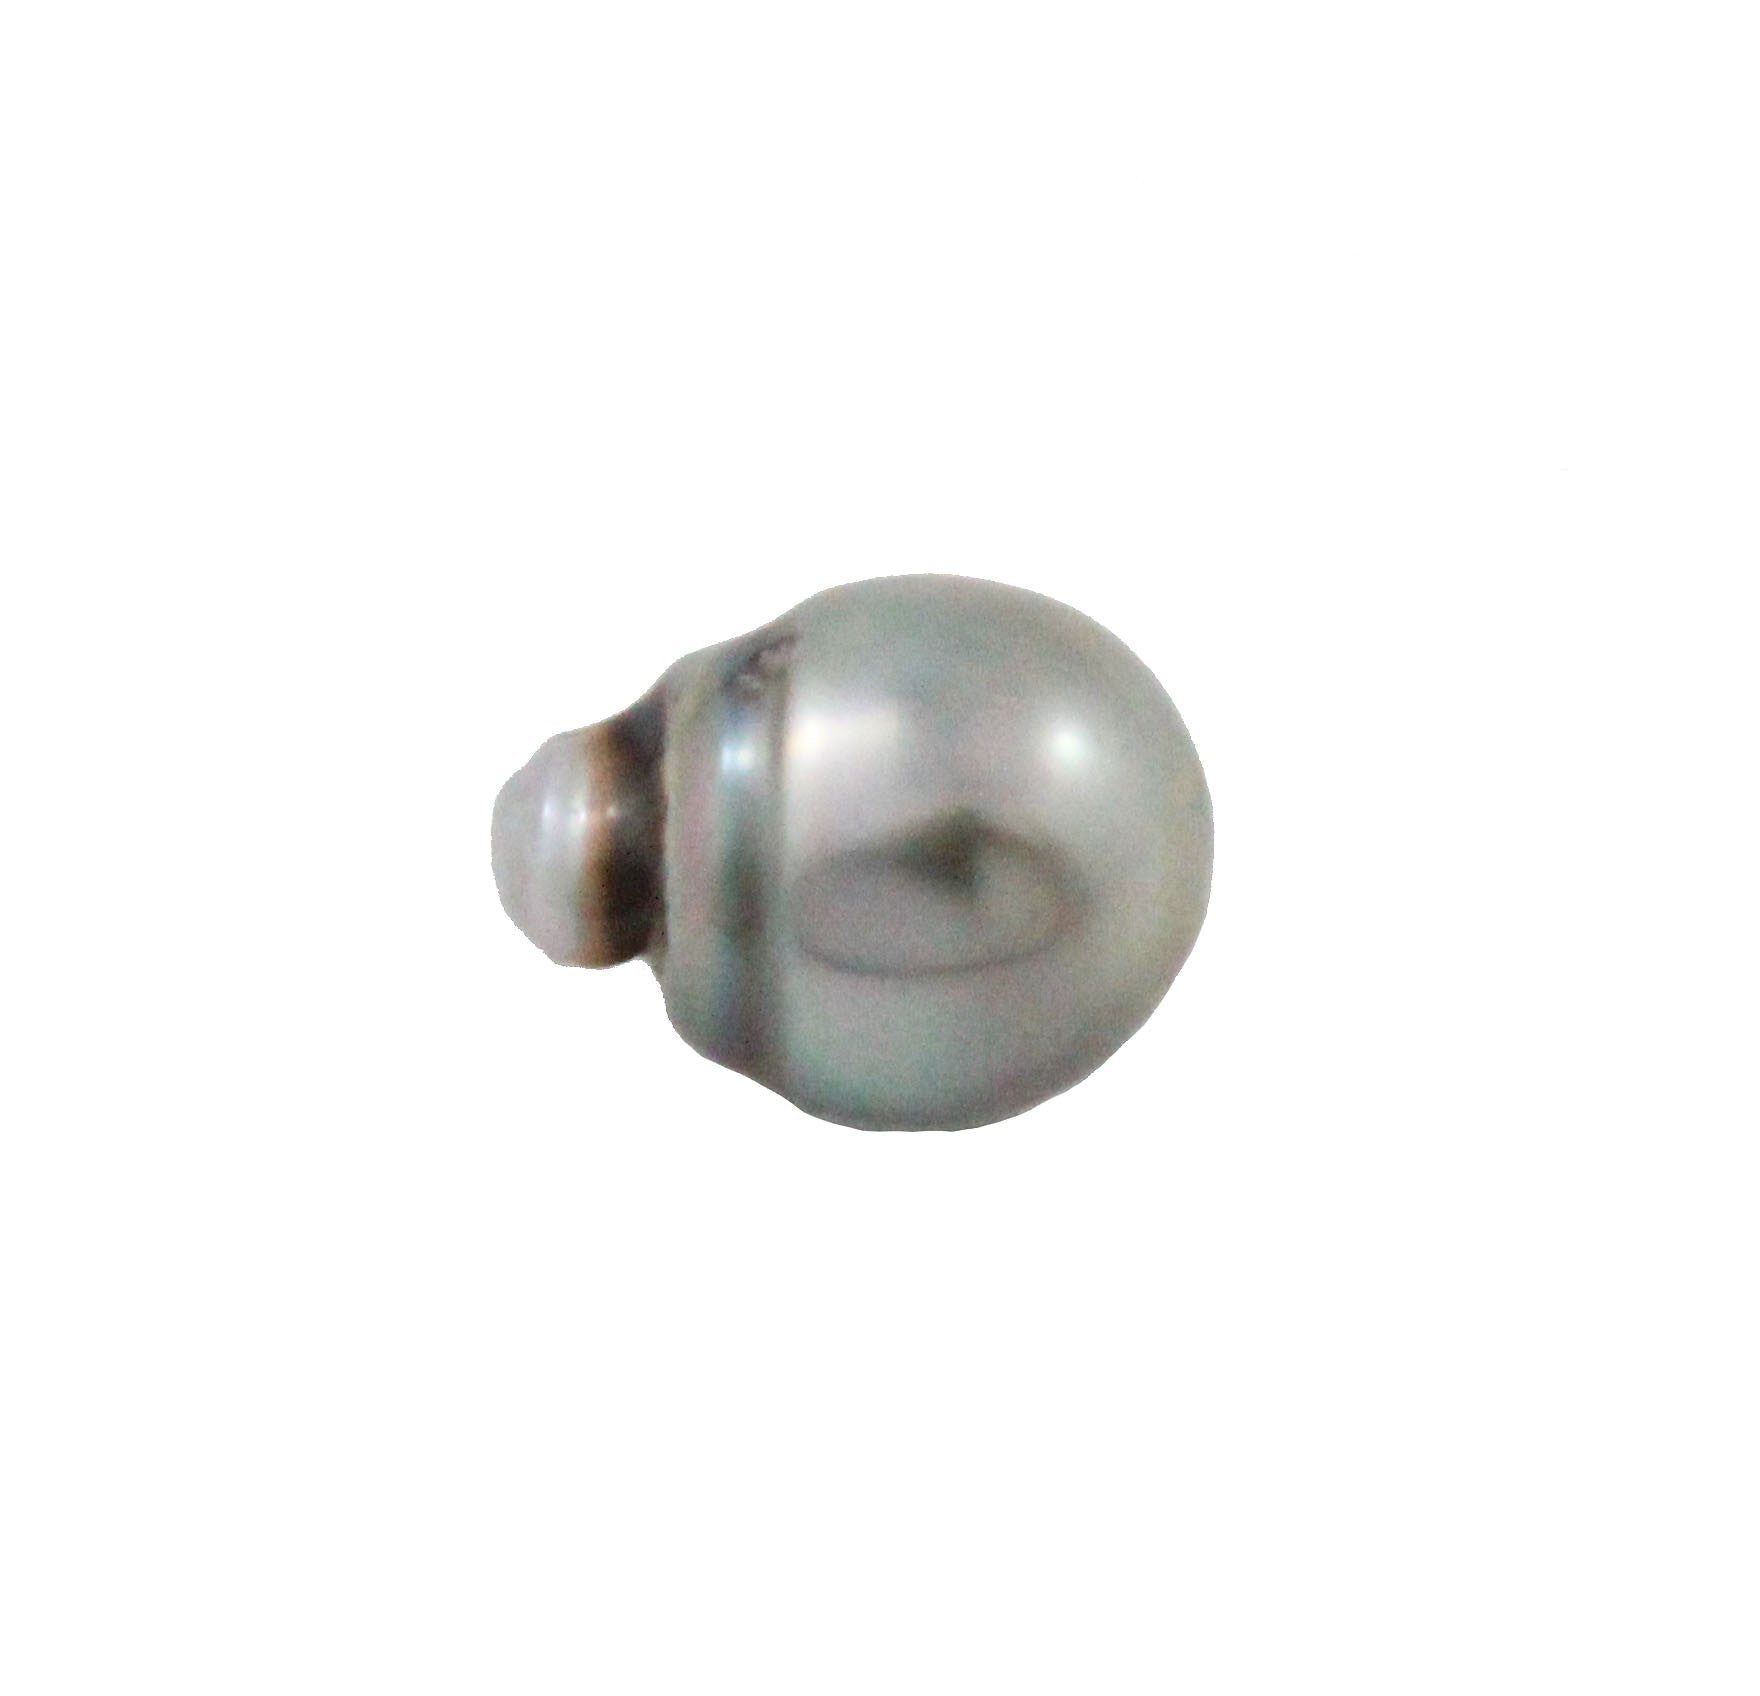 Tahitian pearl undrilled 0.97gr mm 11.15x8.26mm - Purchase only with custom order - Sarah Hughes - 4